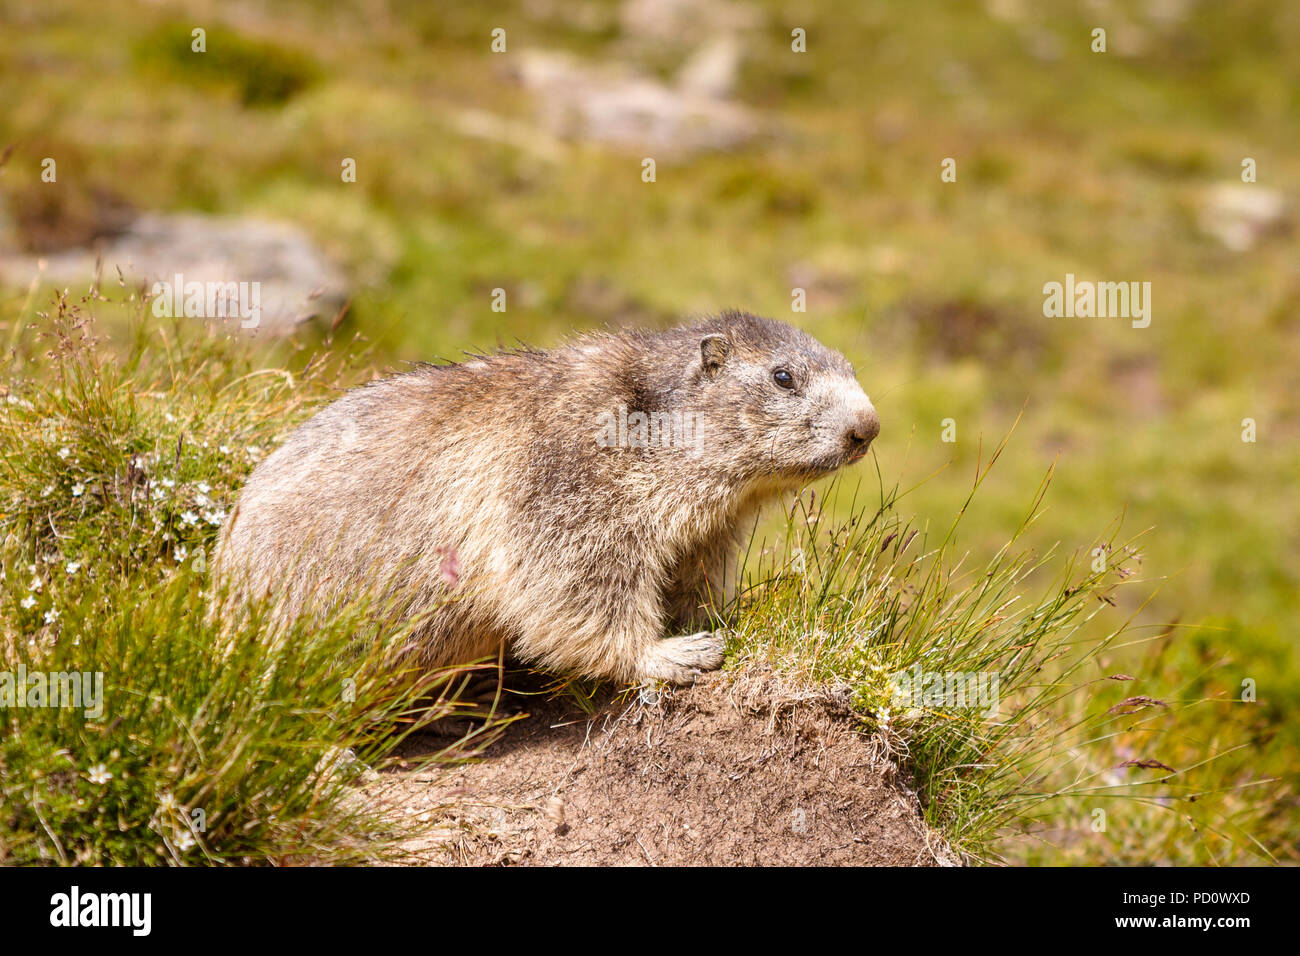 Alpine marmot (Marmota marmota) on a grass tussock in Saas Fee in the Saastal (Saas Valley) in the canton of Valais, Switzerland Stock Photo